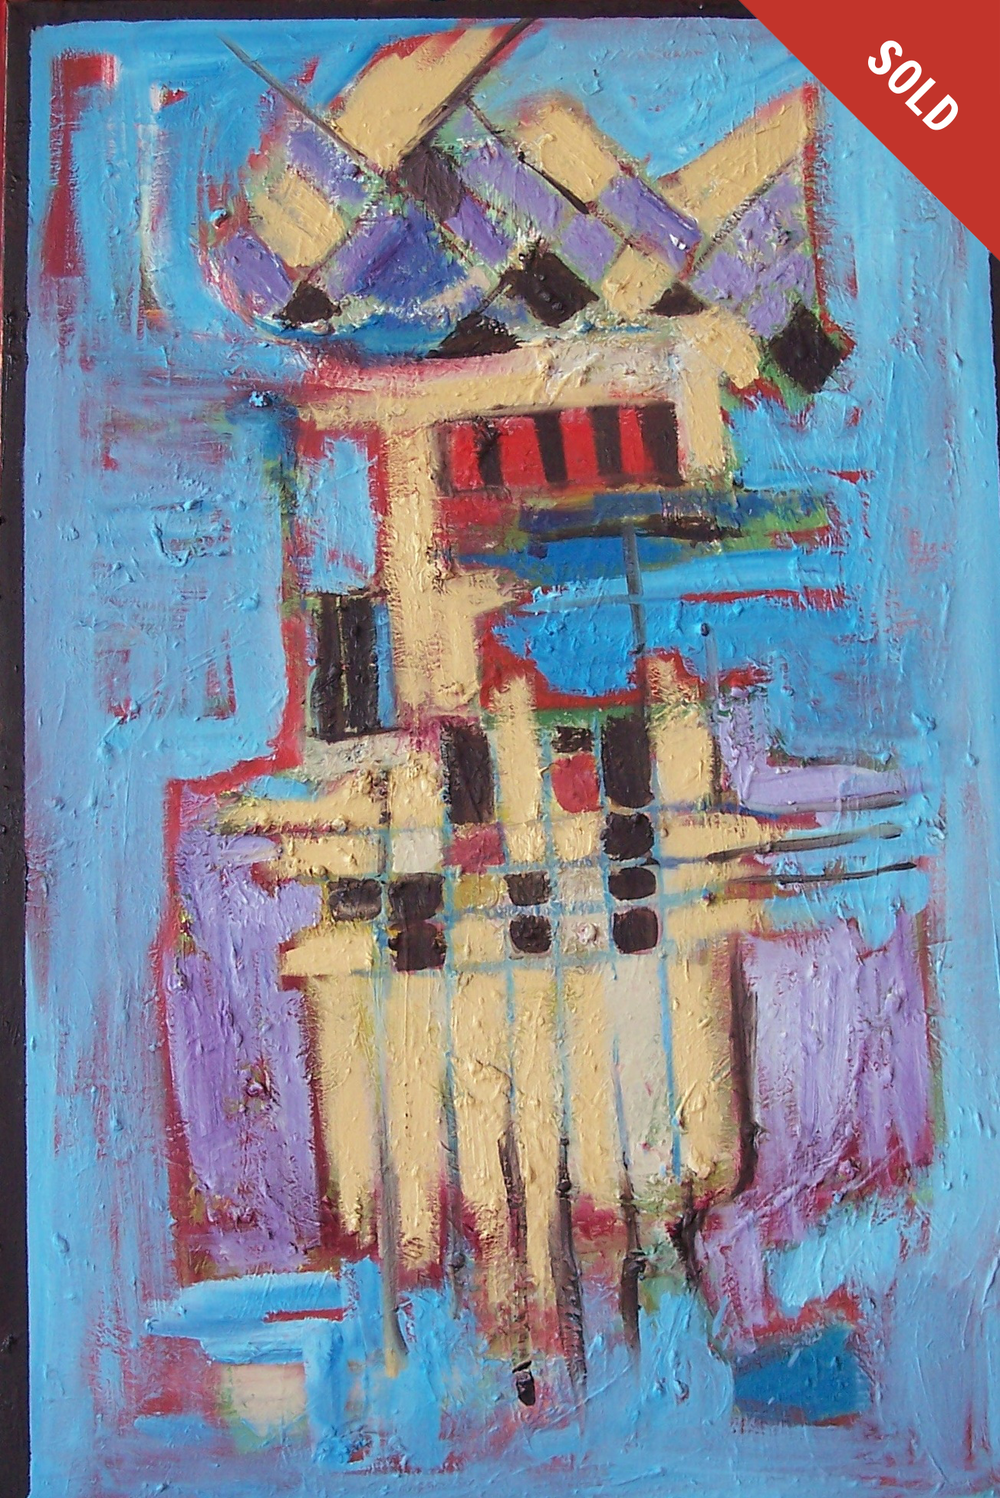 Abstract Blue, Red and Tan (36 X 24)